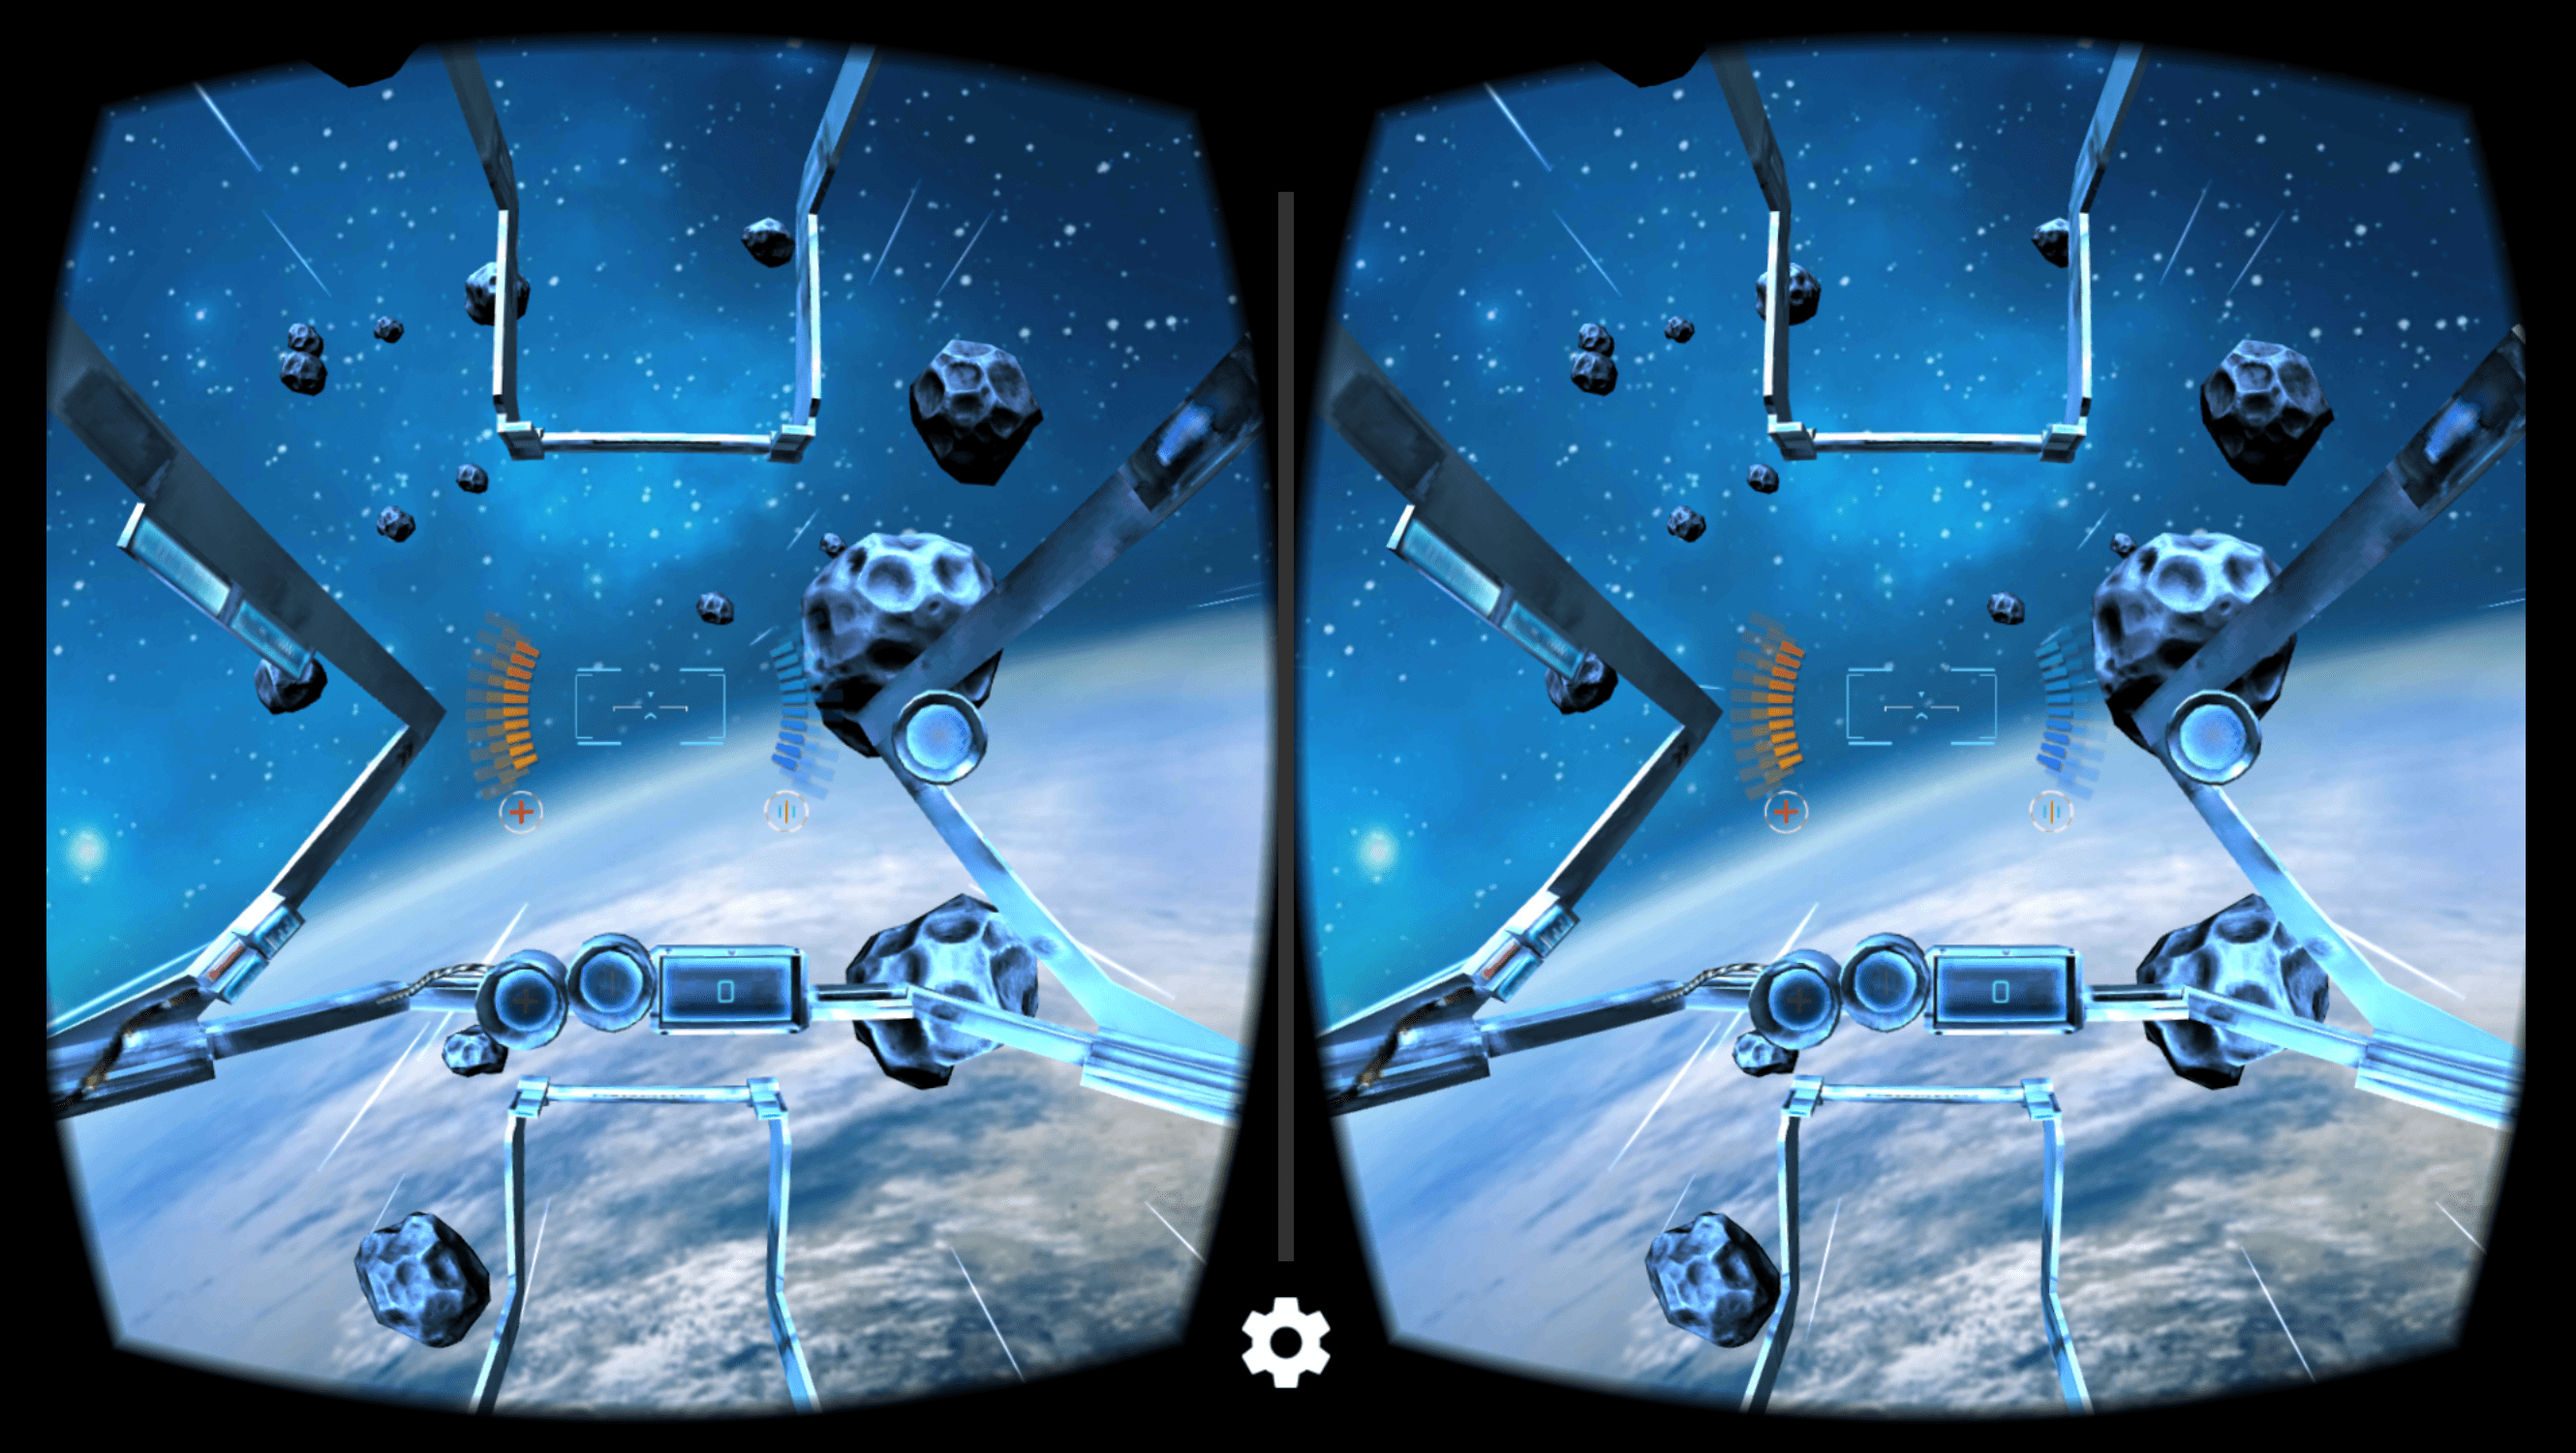 VR games that work with iPhone controllers     End Space VR  one of my favorite games for mobile VR headsets  promises to